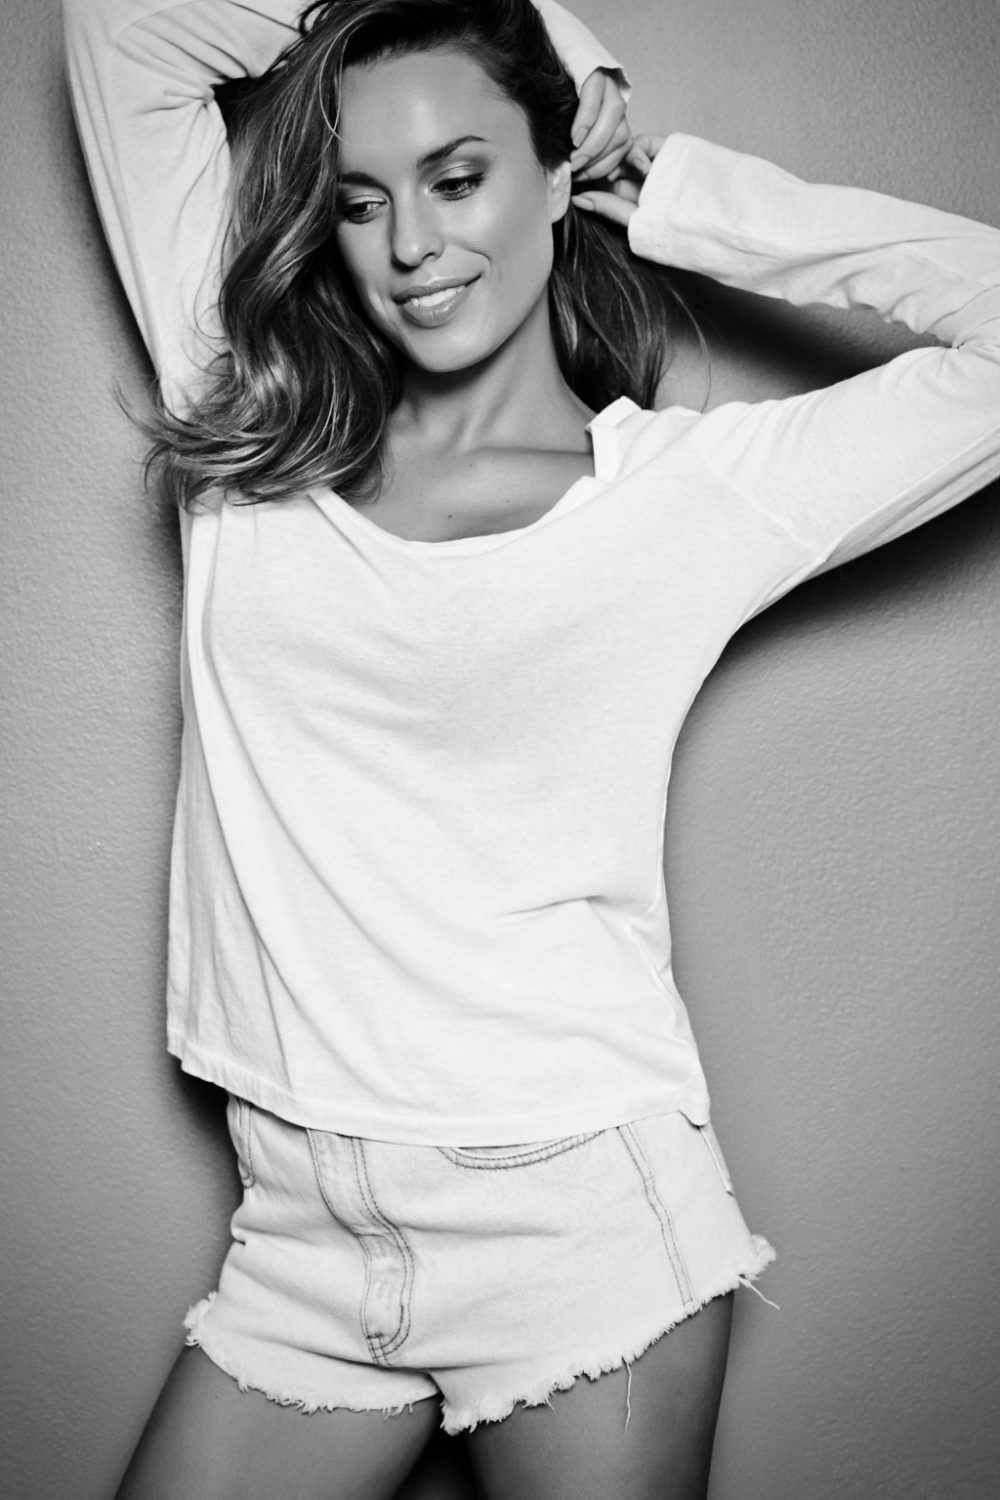 Stunning Actress Jessica Mcnamee On Living Her Hollywood